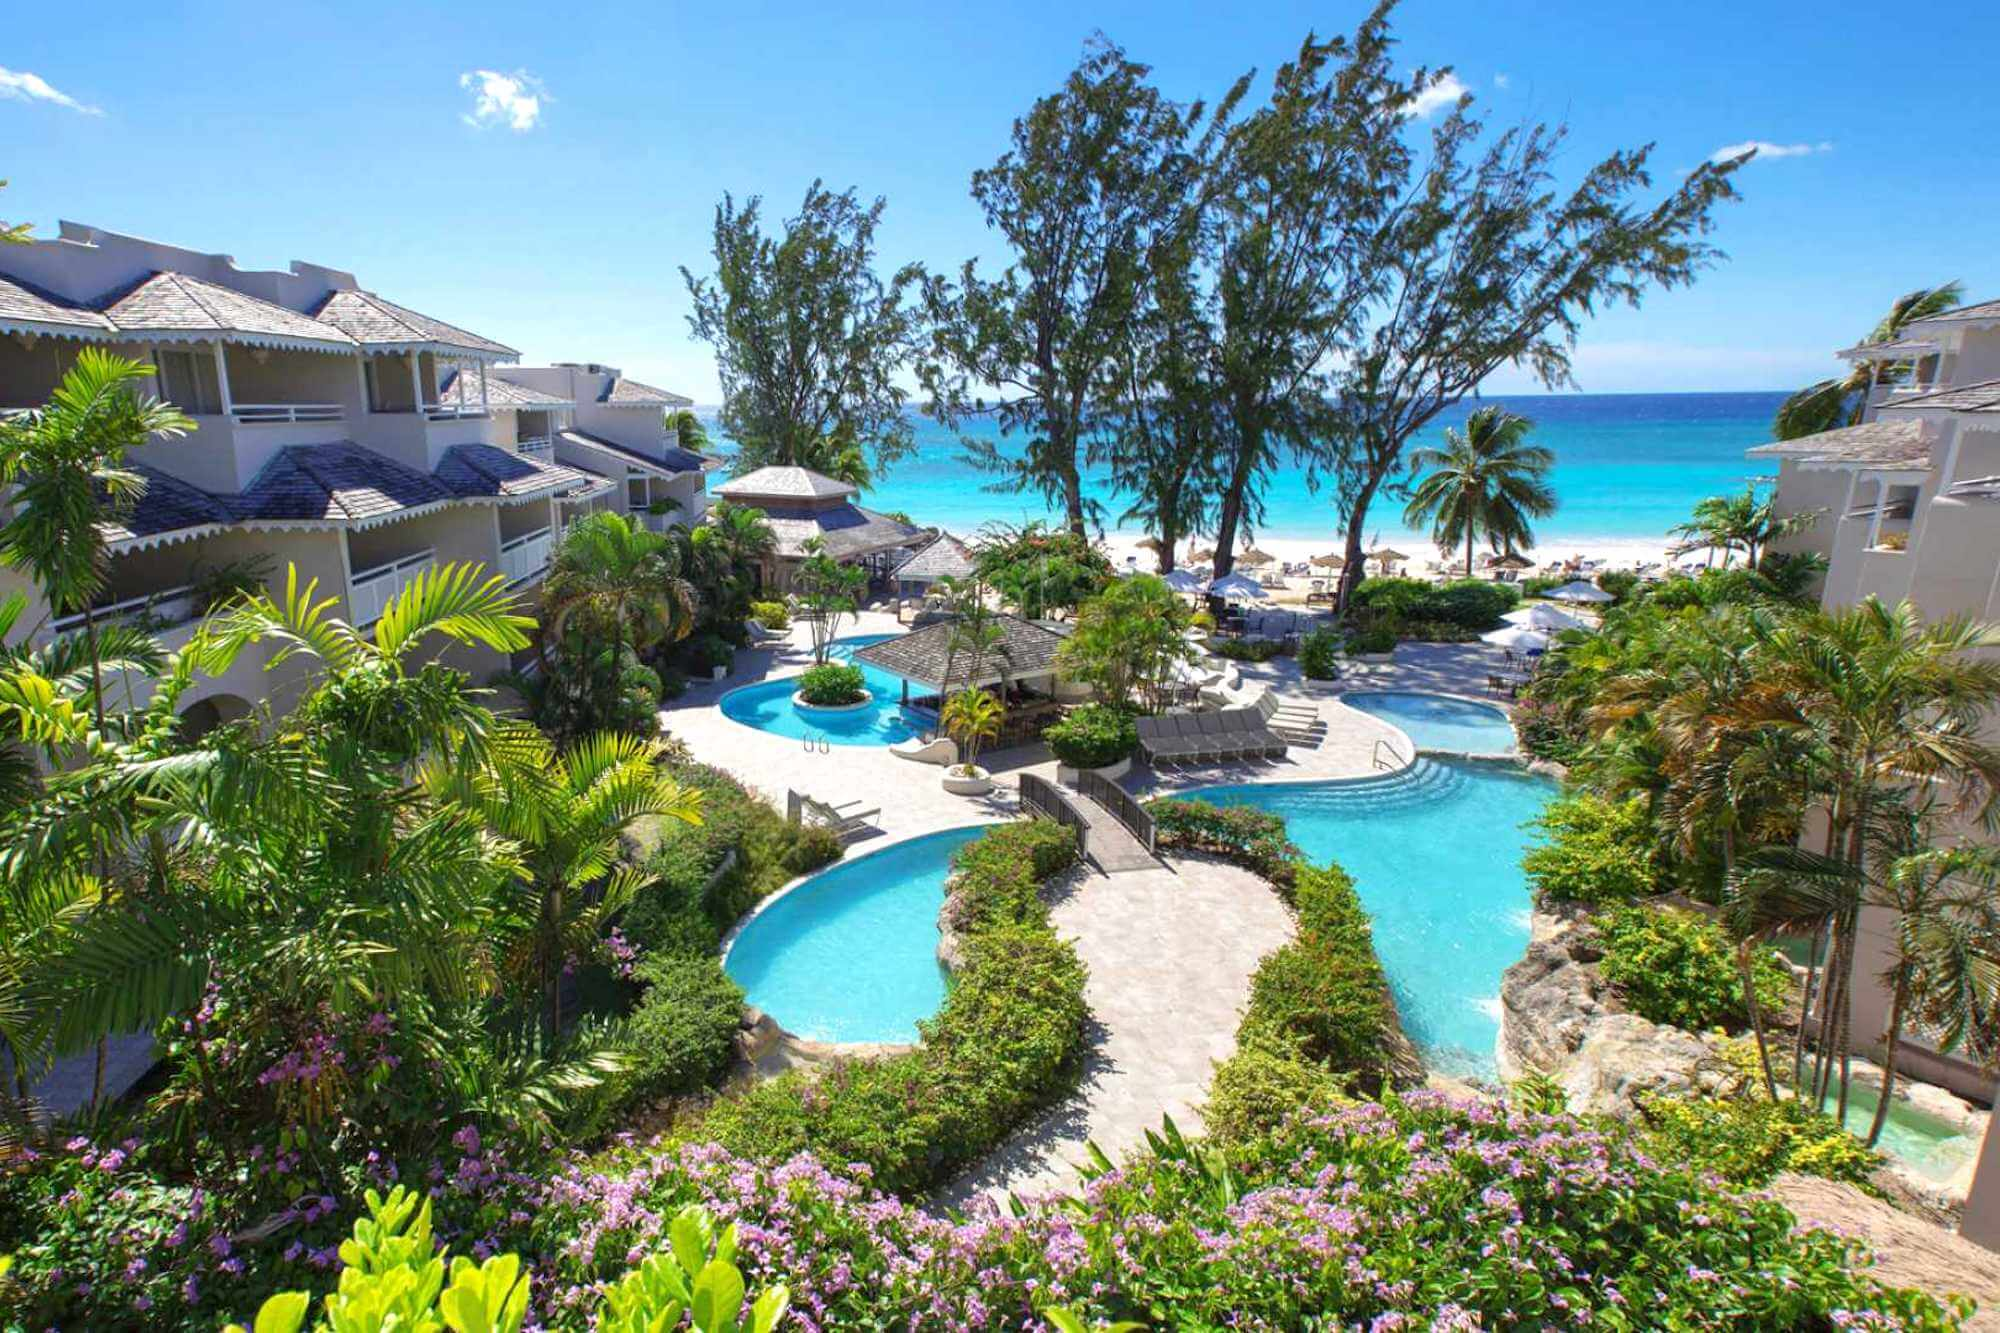 Bougainvillea Barbados Pool